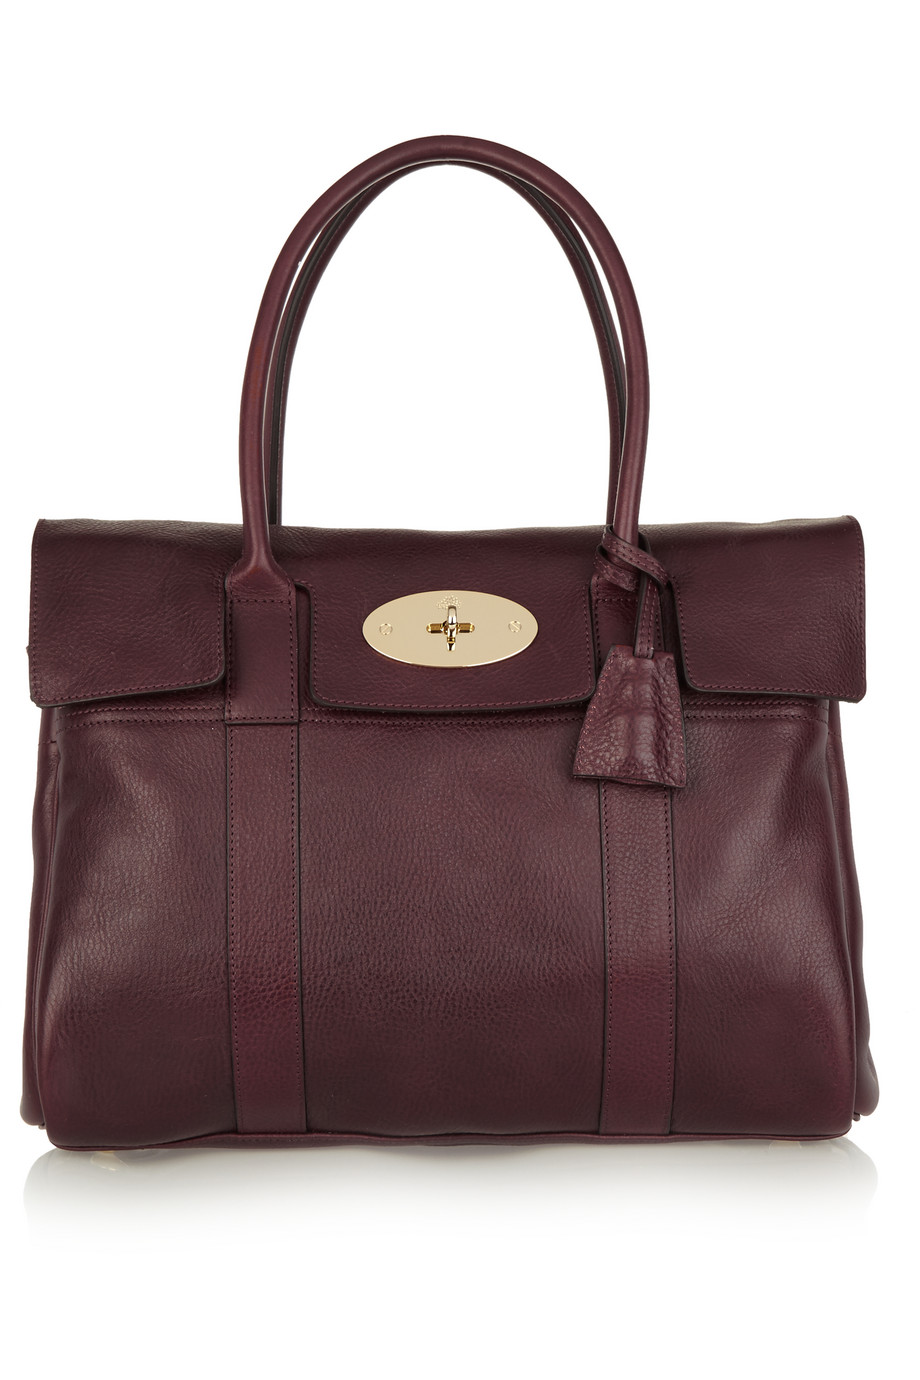 Mulberry The Bayswater Textured-Leather Tote, Burgundy, Women's